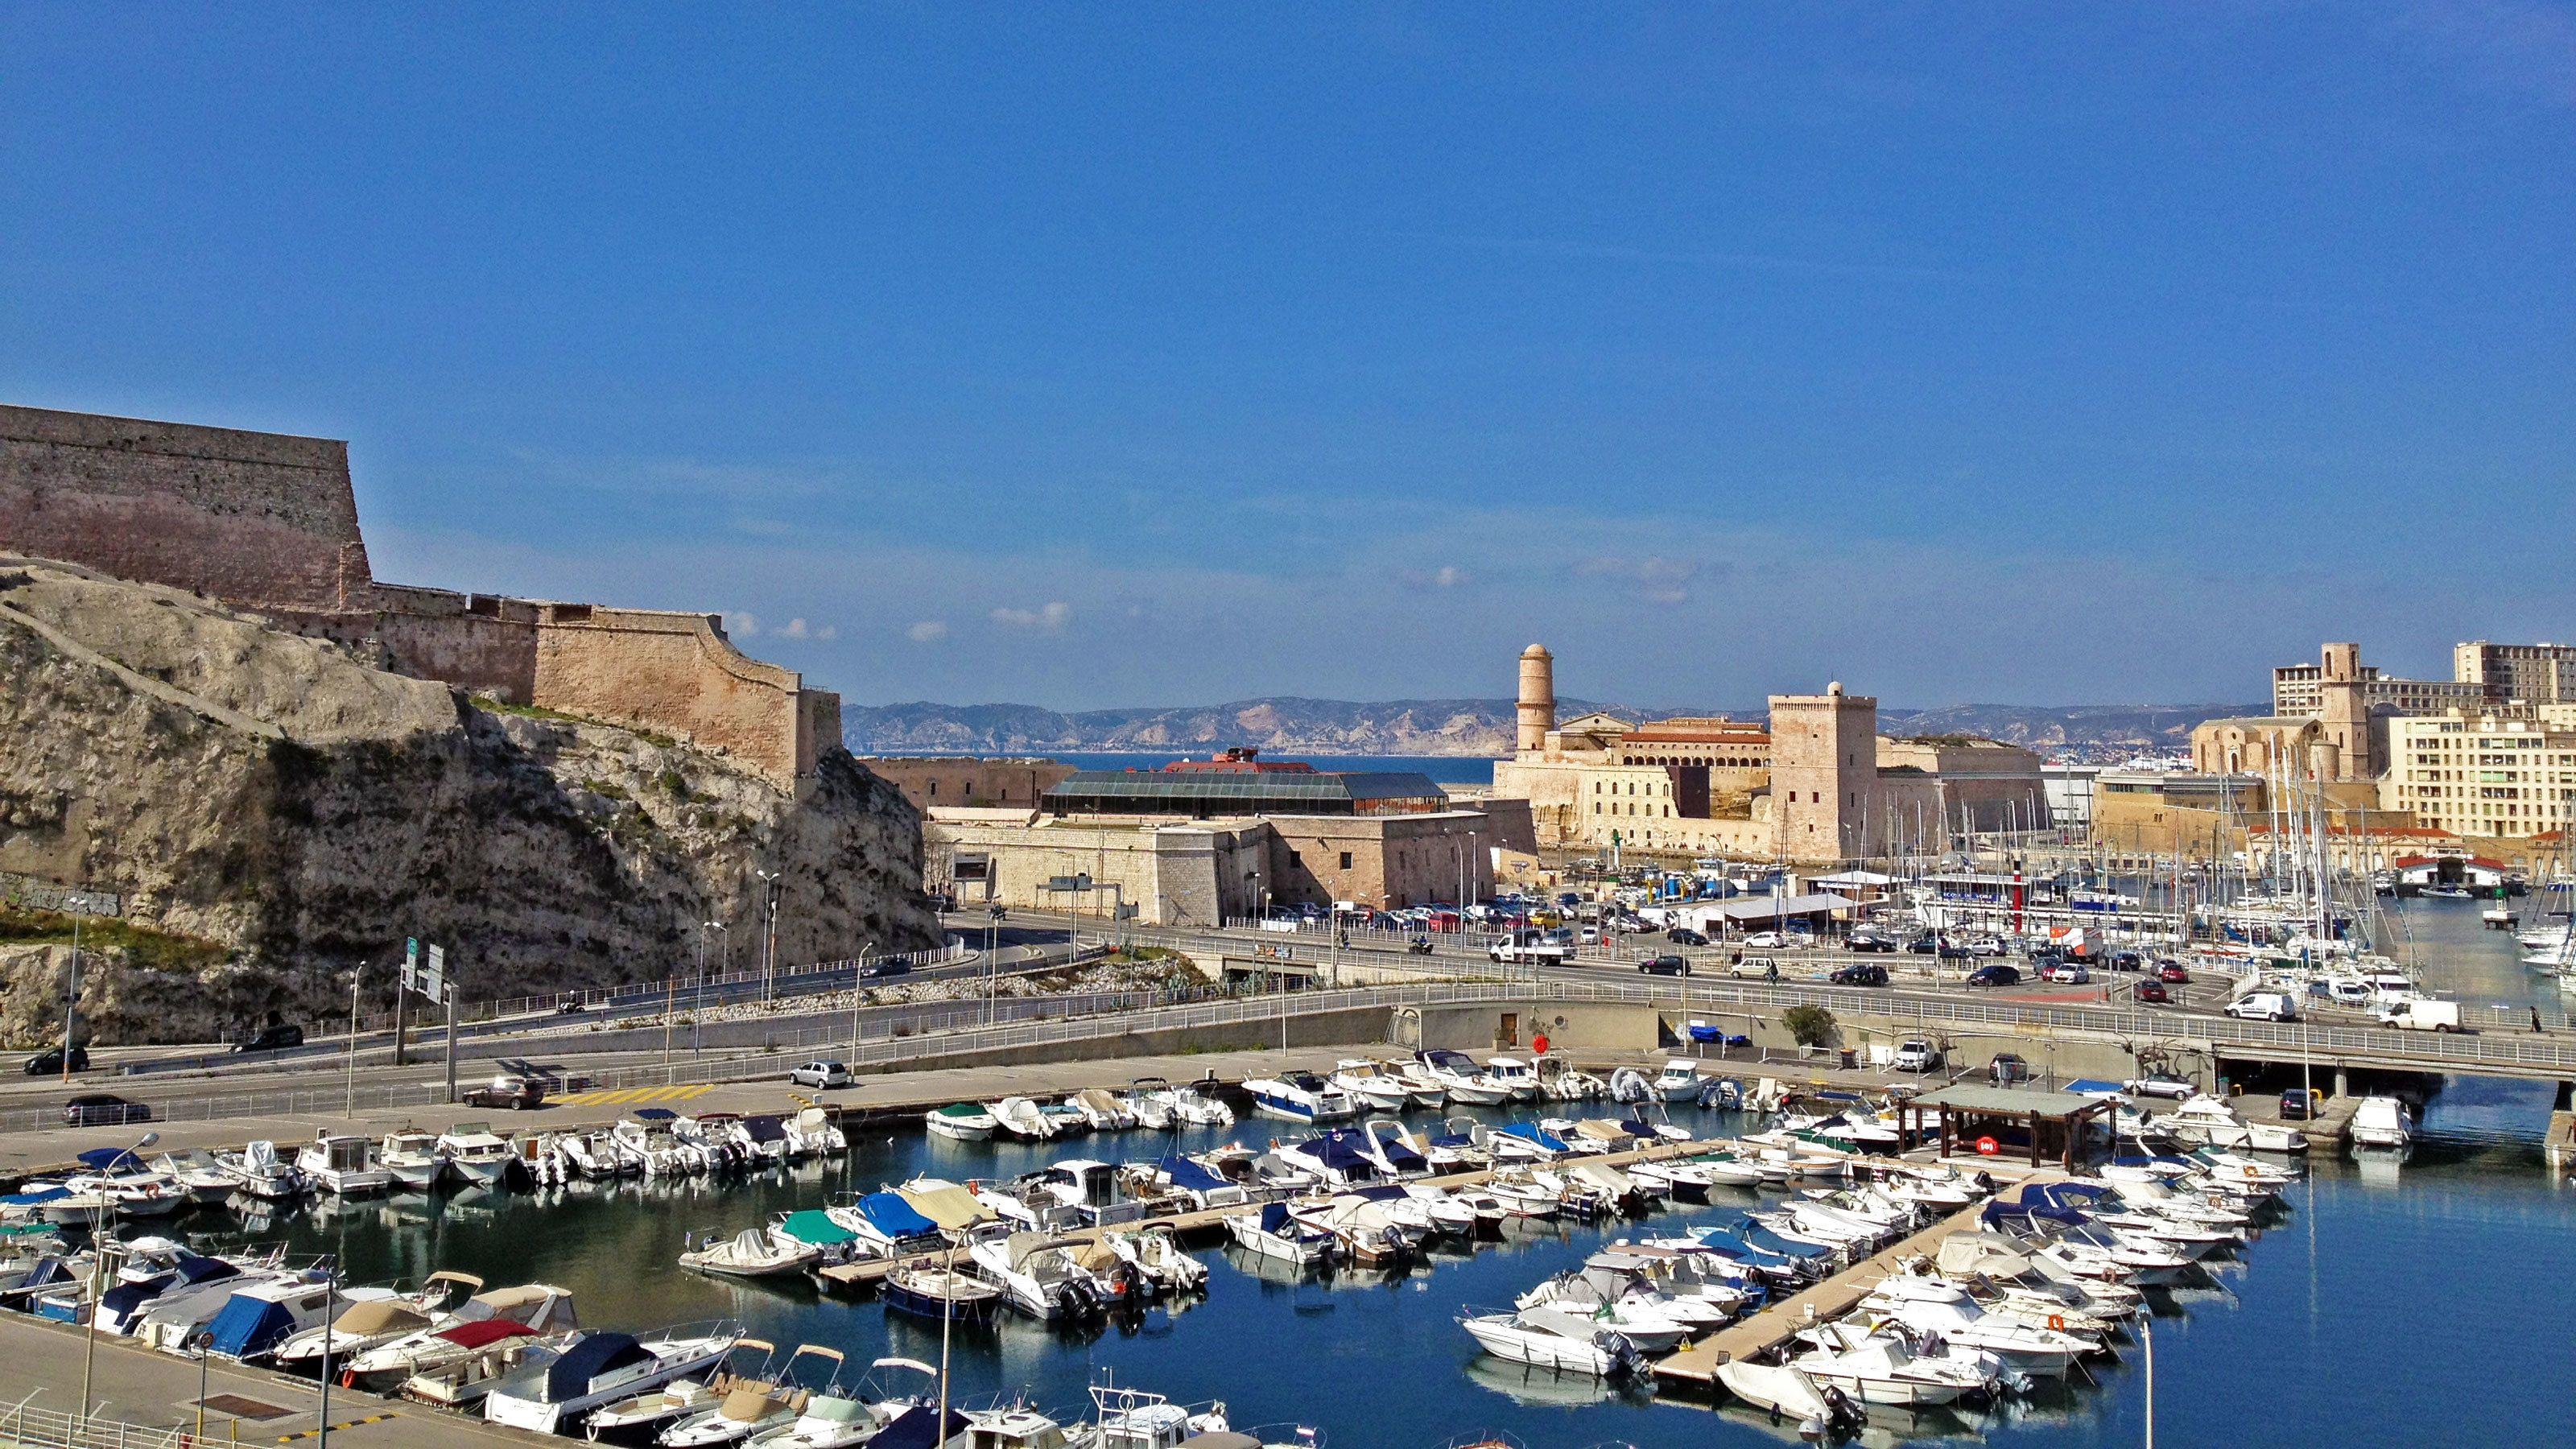 Town and harbor of Marseille